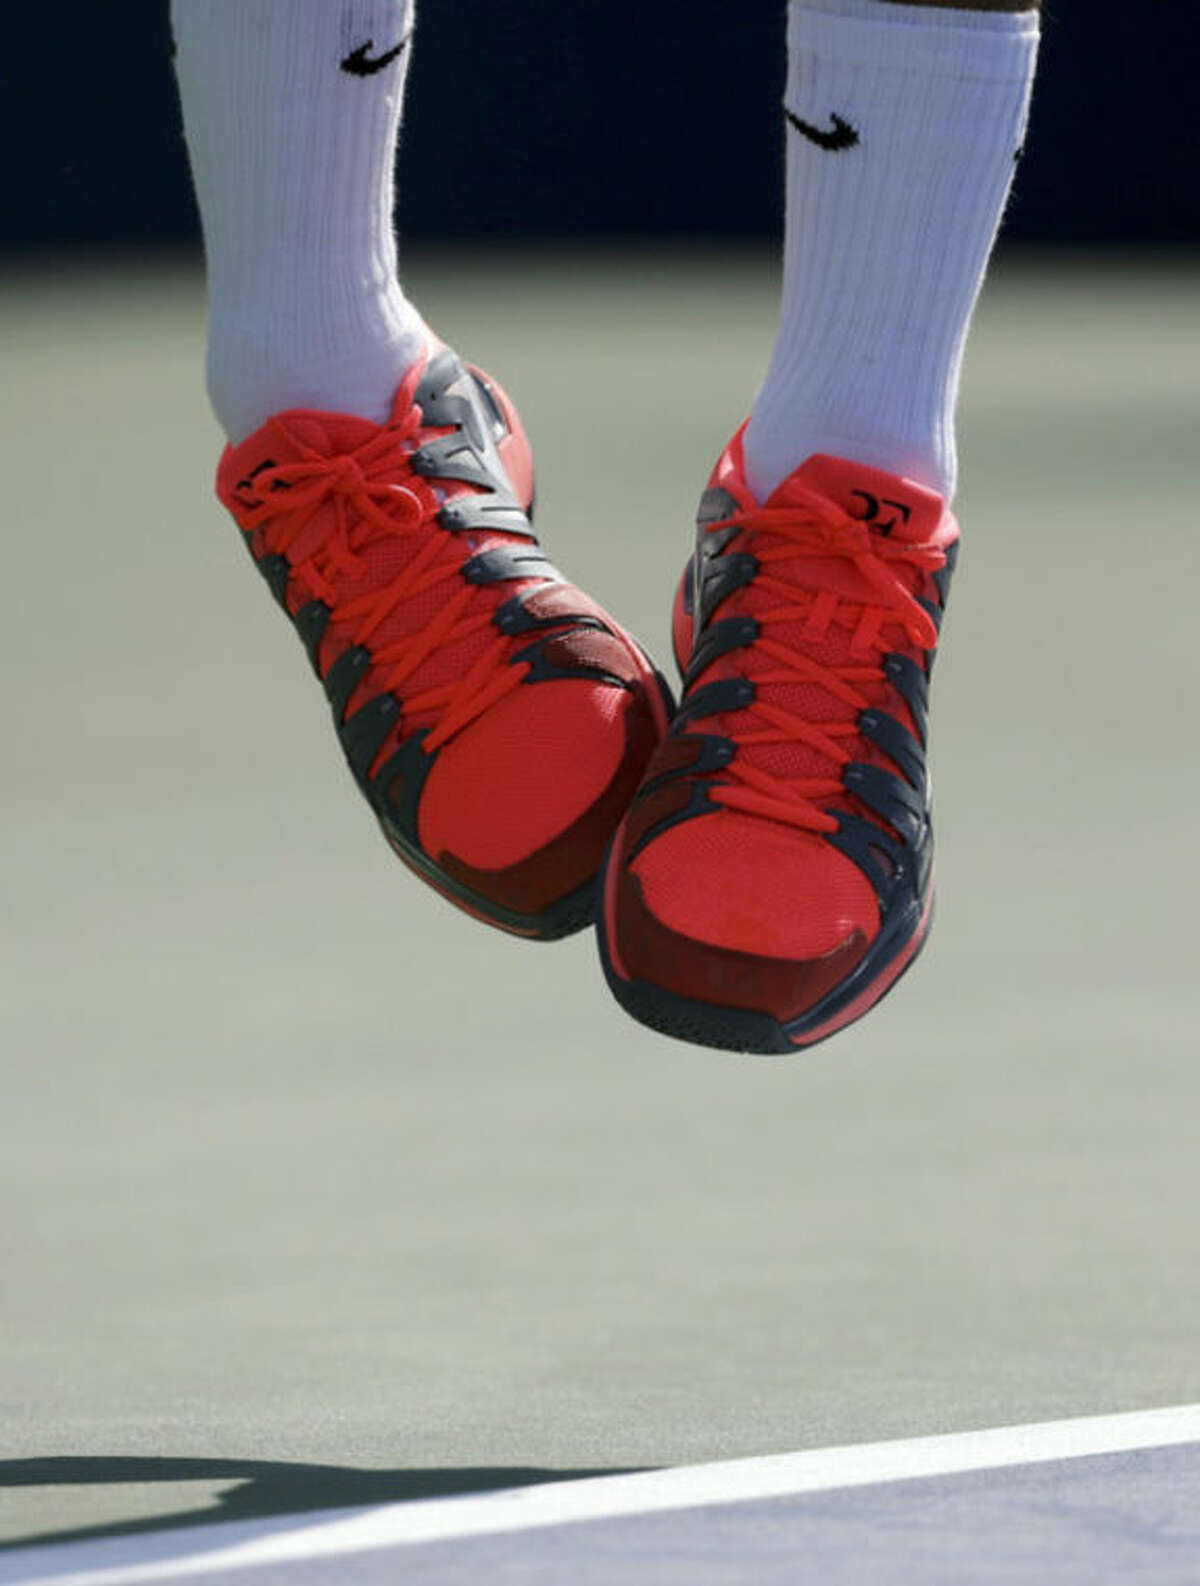 Roger Federer, of Switzerland, serves against Grega Zemlja, of Slovenia, during the first round of the 2013 U.S. Open tennis tournament, Tuesday, Aug. 27, 2013, in New York. (AP Photo/Mike Groll)